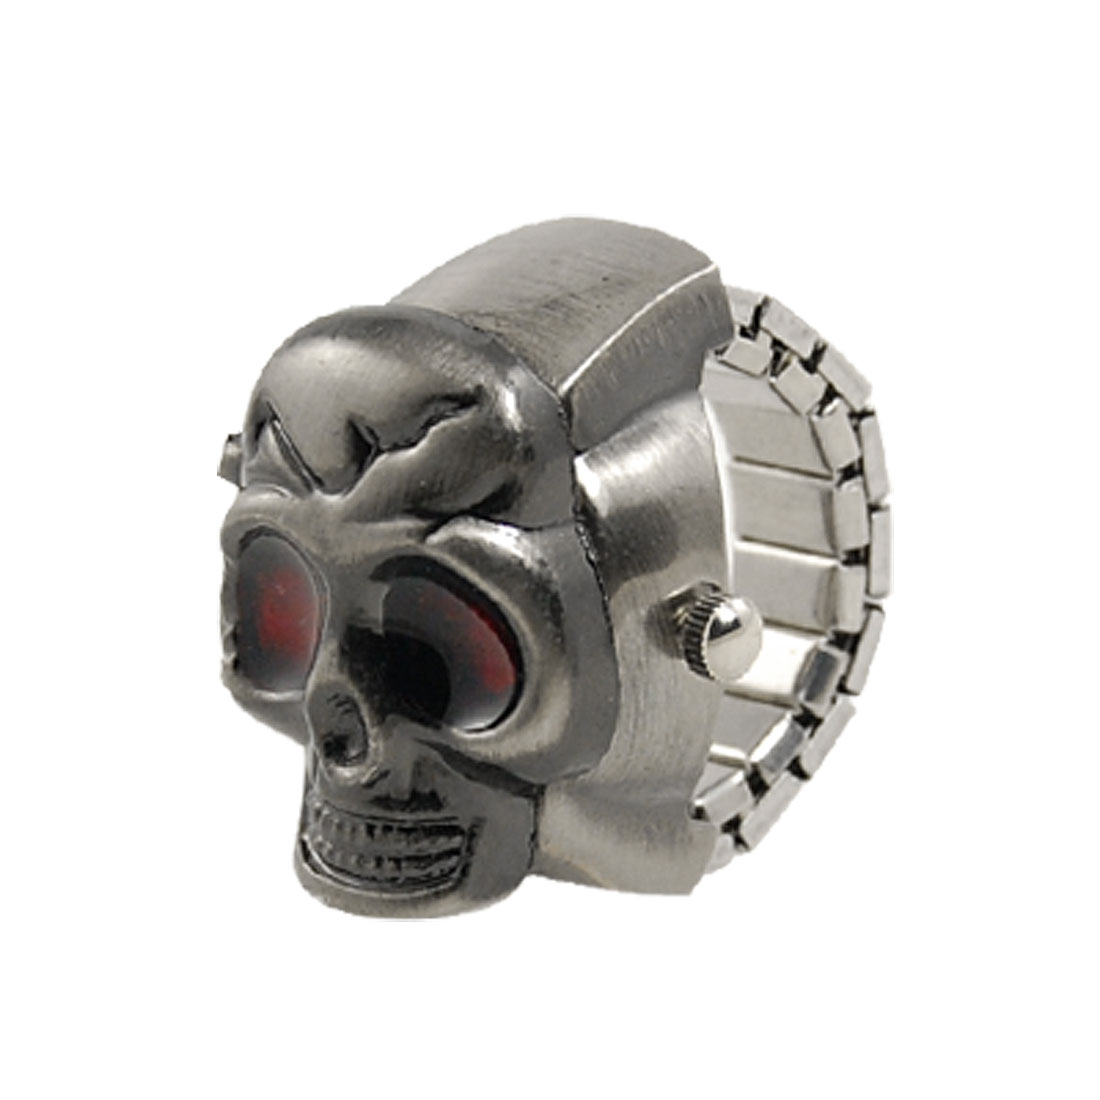 Alloy Skull Design Flip Open Stretchy Band Finger Ring Watch Grey Silver Tone UK M1/2